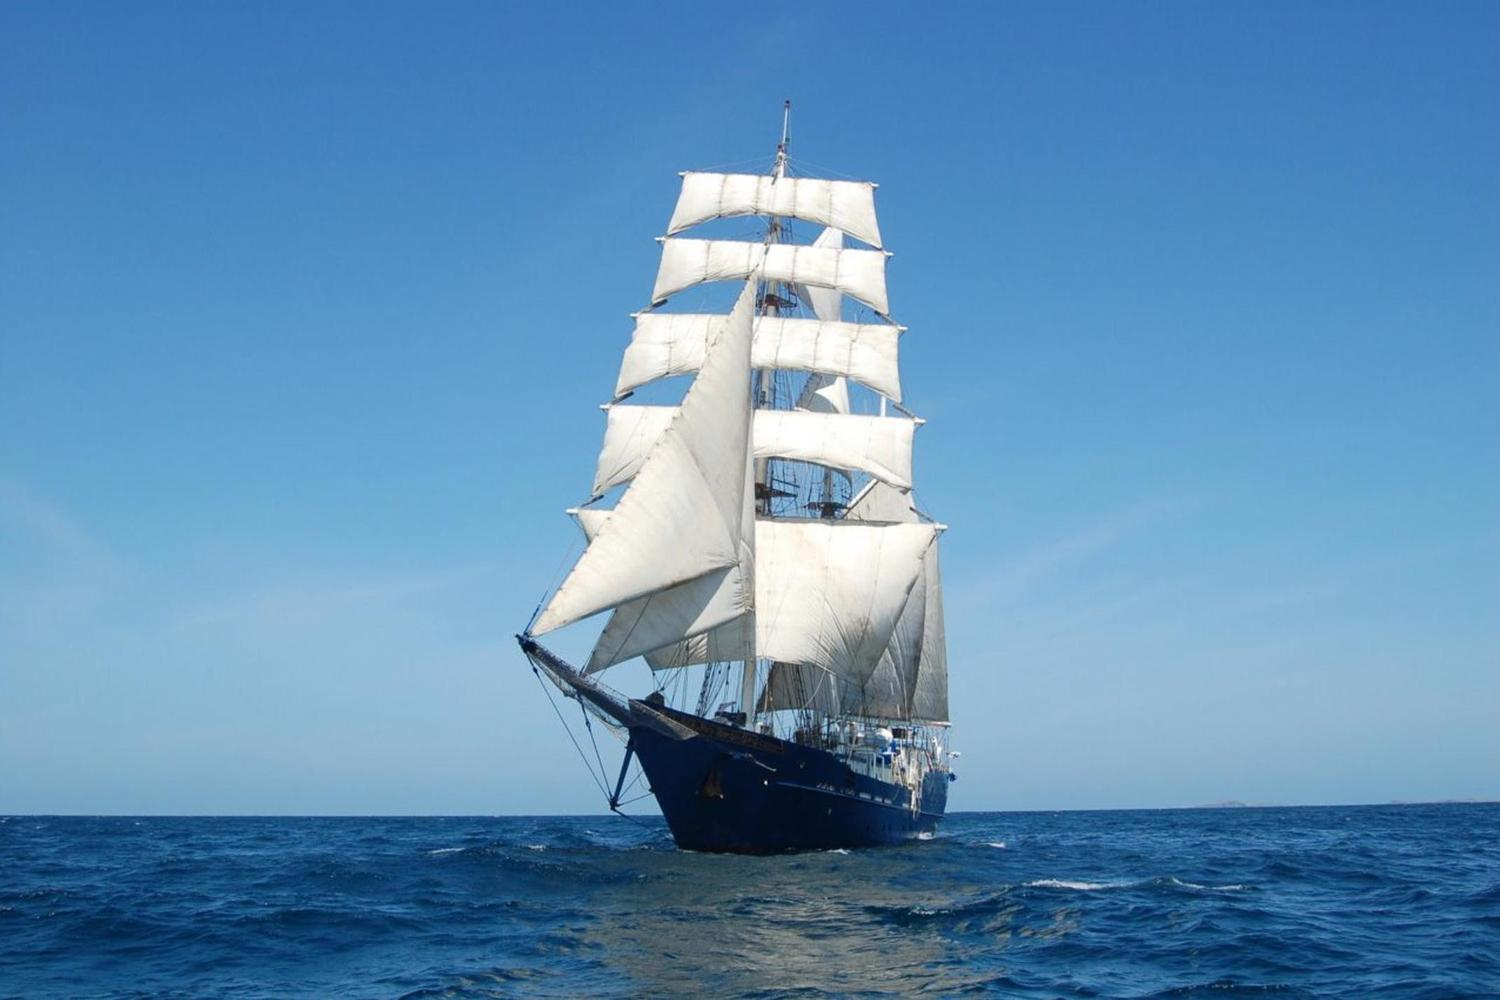 The Galapagos yacht Mary Anne under full sail